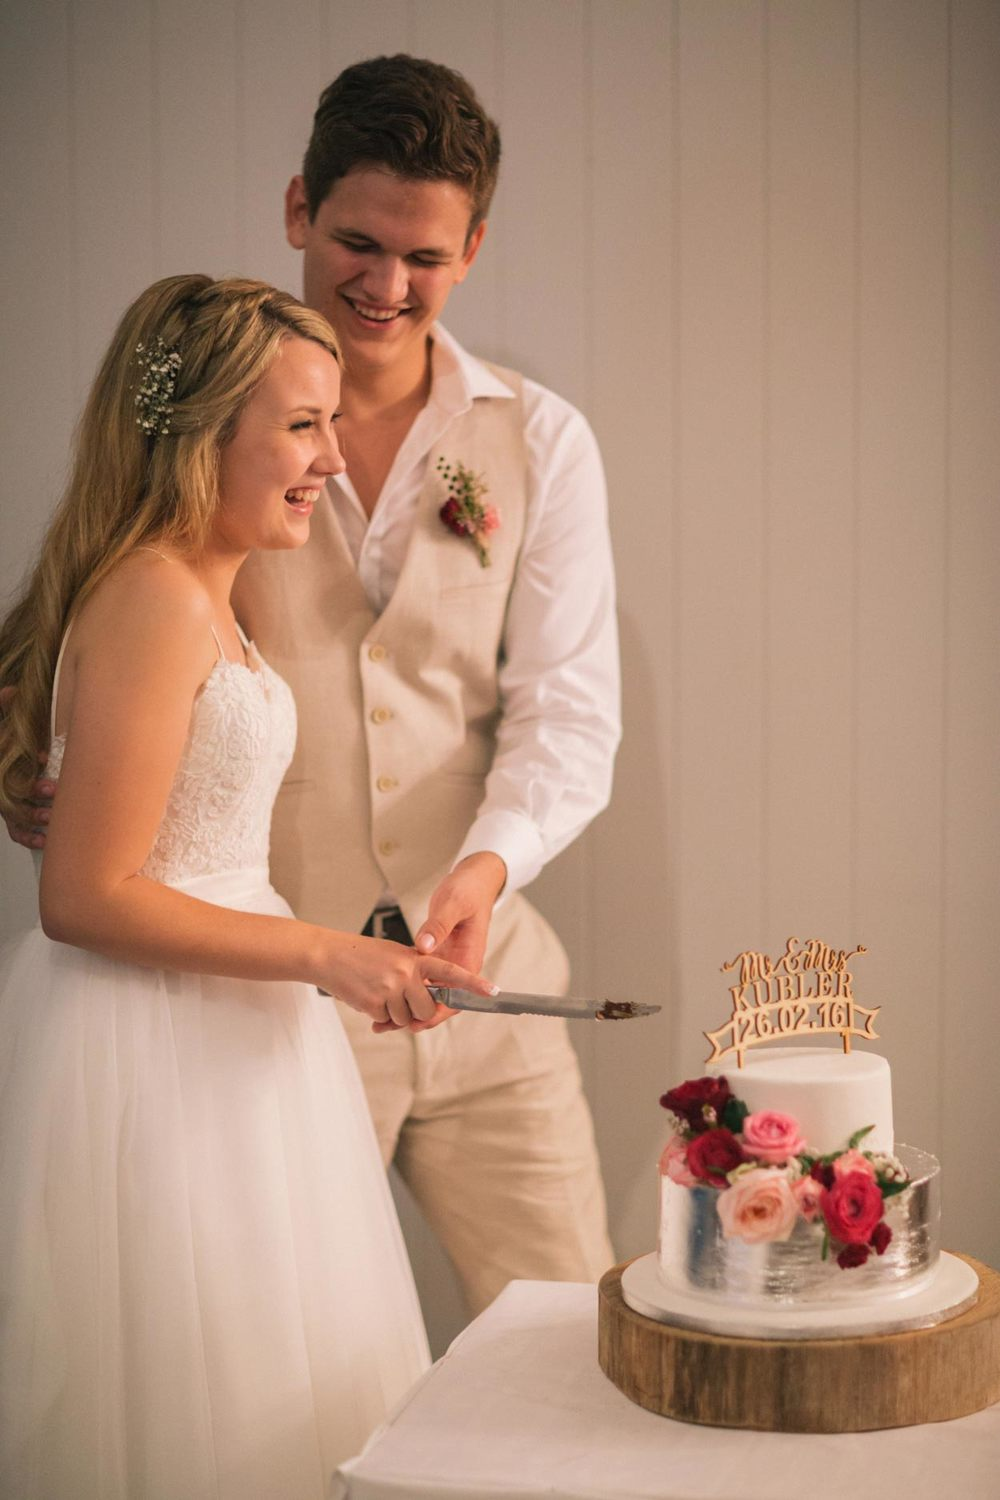 Cake Cutting, Noosa Boathouse Wedding - Sunshine Coast, Queensland, Destination Australian Photographers